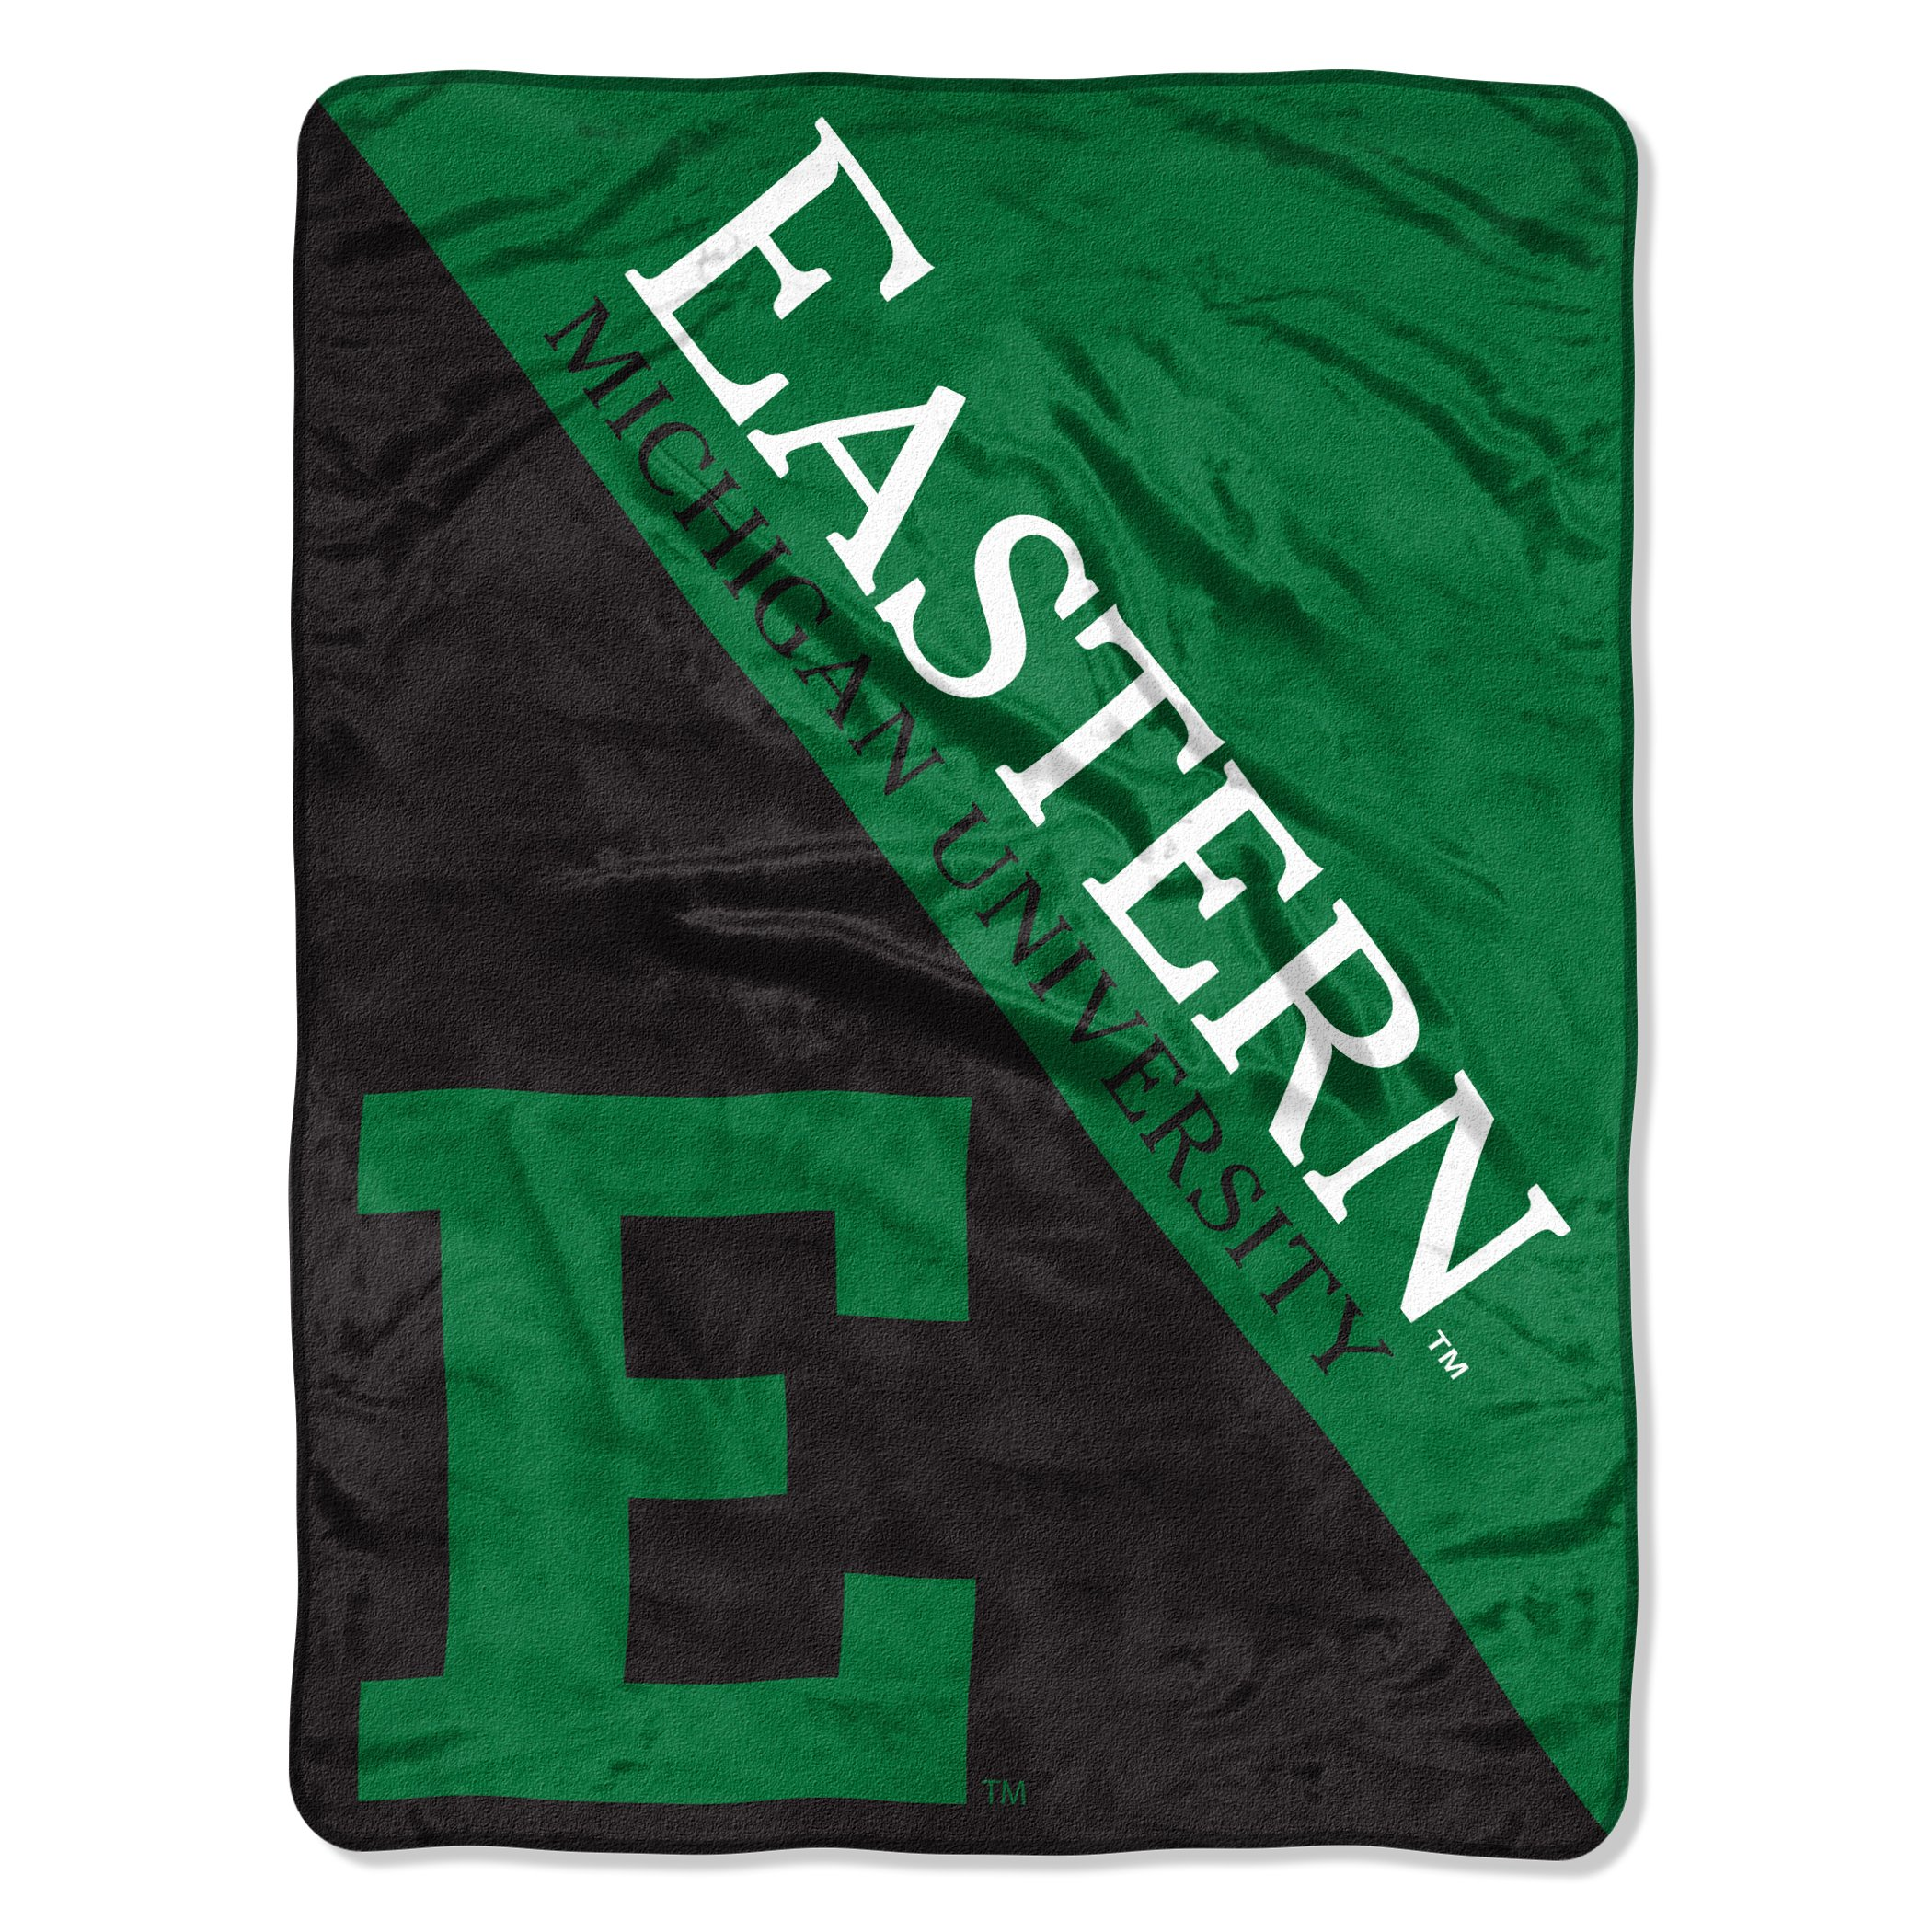 The Northwest Company Officially Licensed NCAA Eastern Michigan Eagles Halftone Micro Raschel Throw Blanket, 46'' x 60'', Multi Color by The Northwest Company